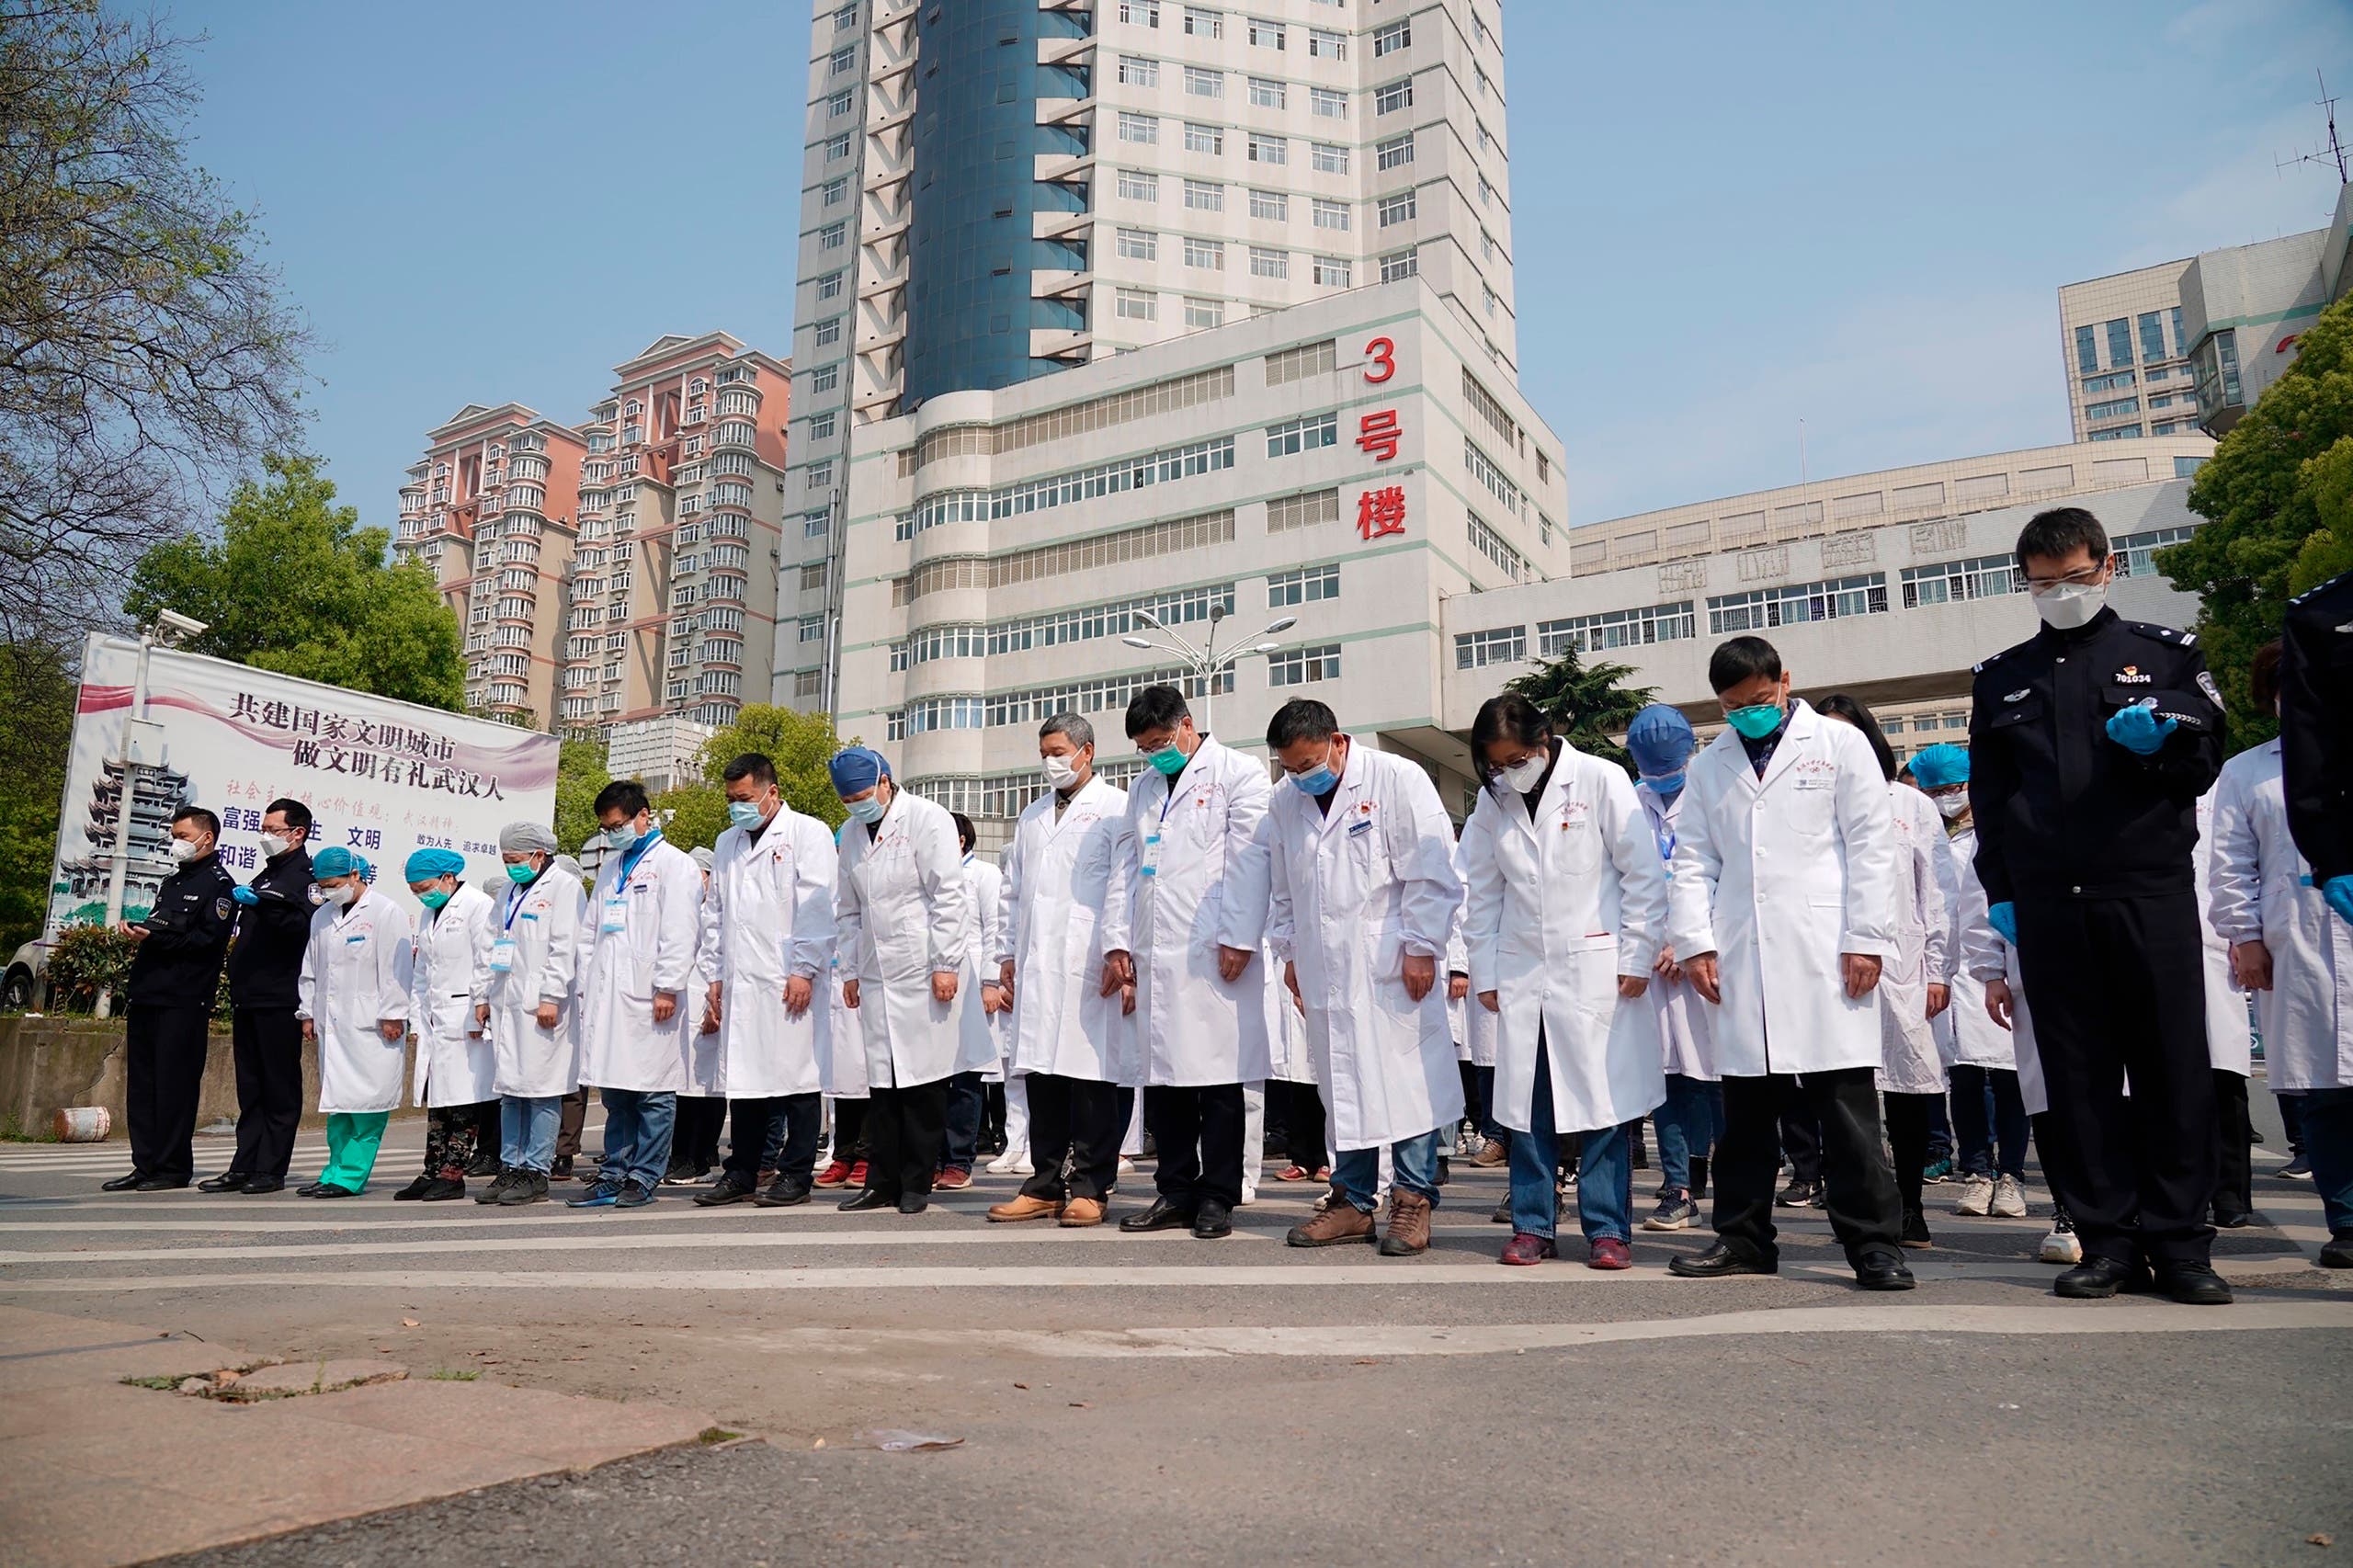 Medical workers bow their heads during a national moment of mourning for victims of coronavirus in Wuhan in central China's Hubei Province on April 4, 2020. (AP)